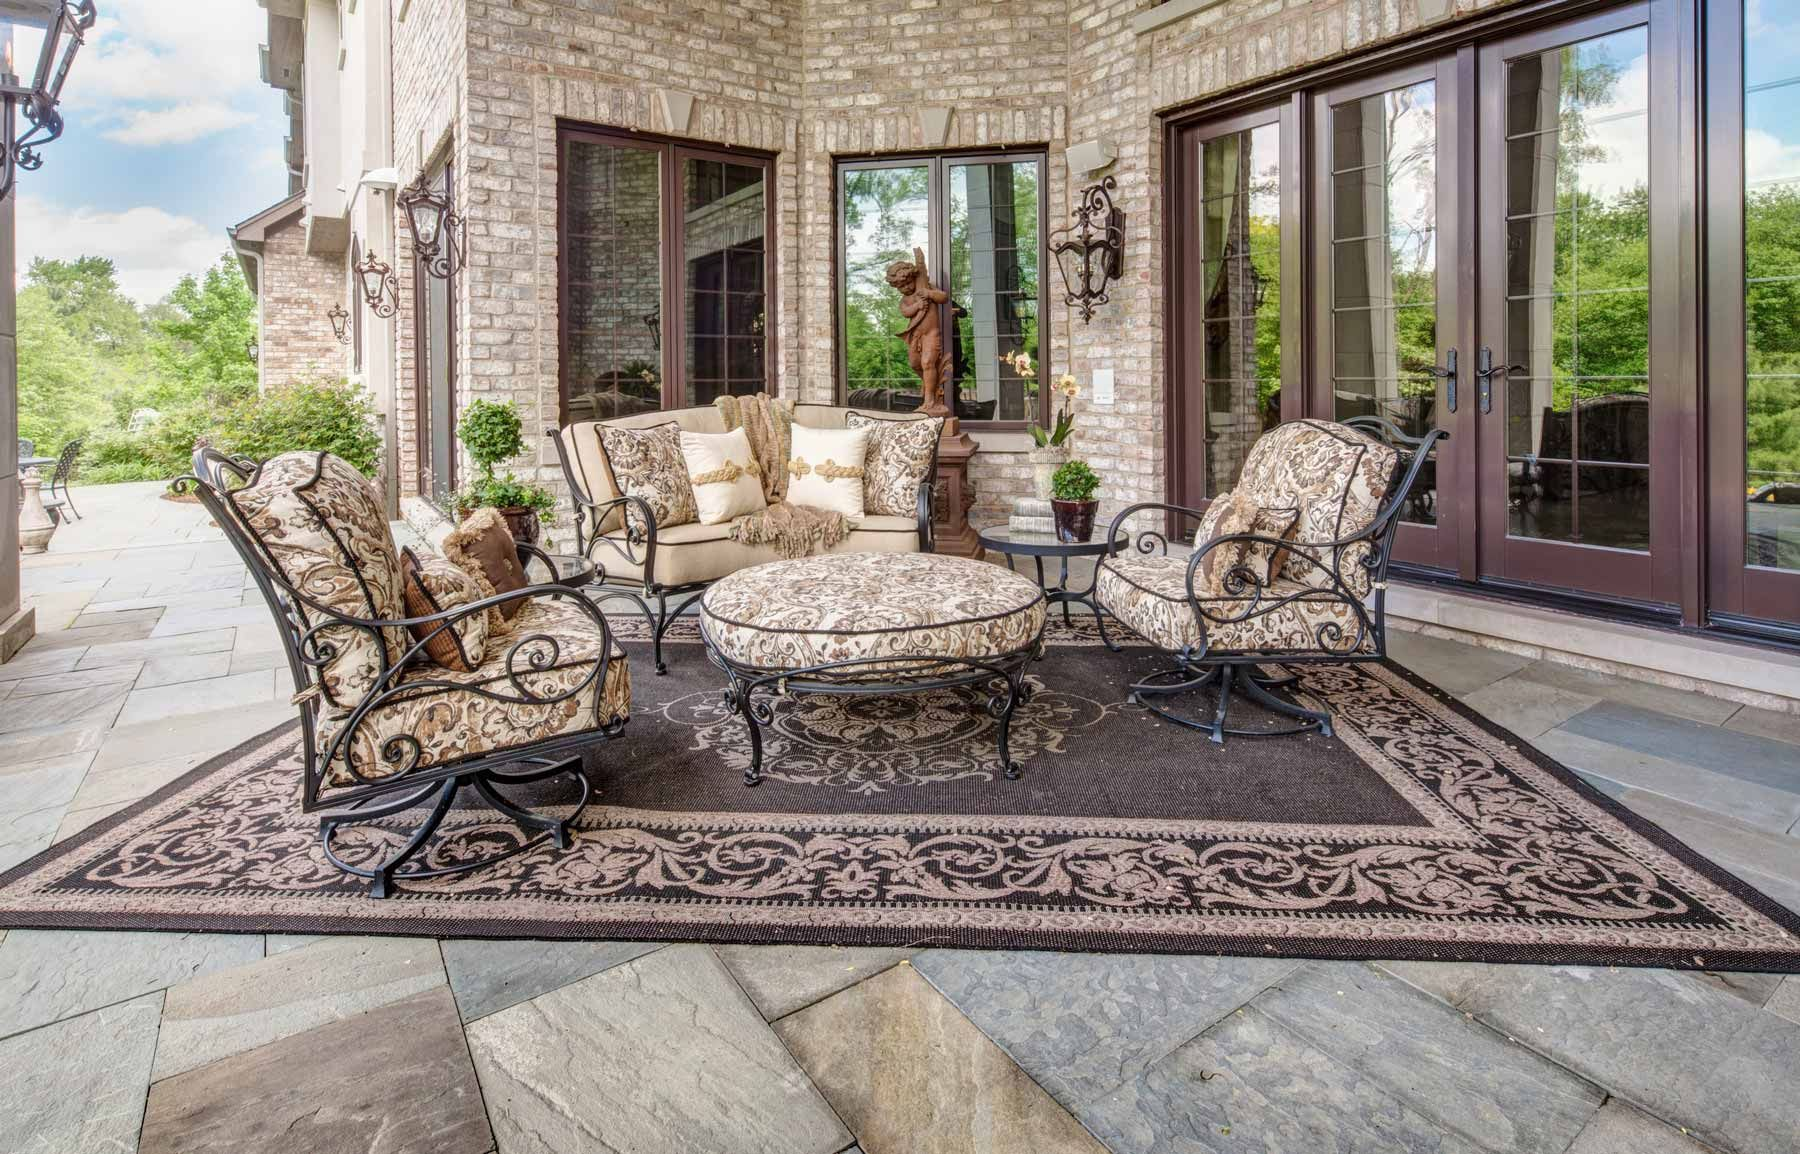 Create An Outdoor Living Space With Our Line Of Outdoor Furniture. Linly  Designs Offers A Variety Of Styles And Colors For Any Space.